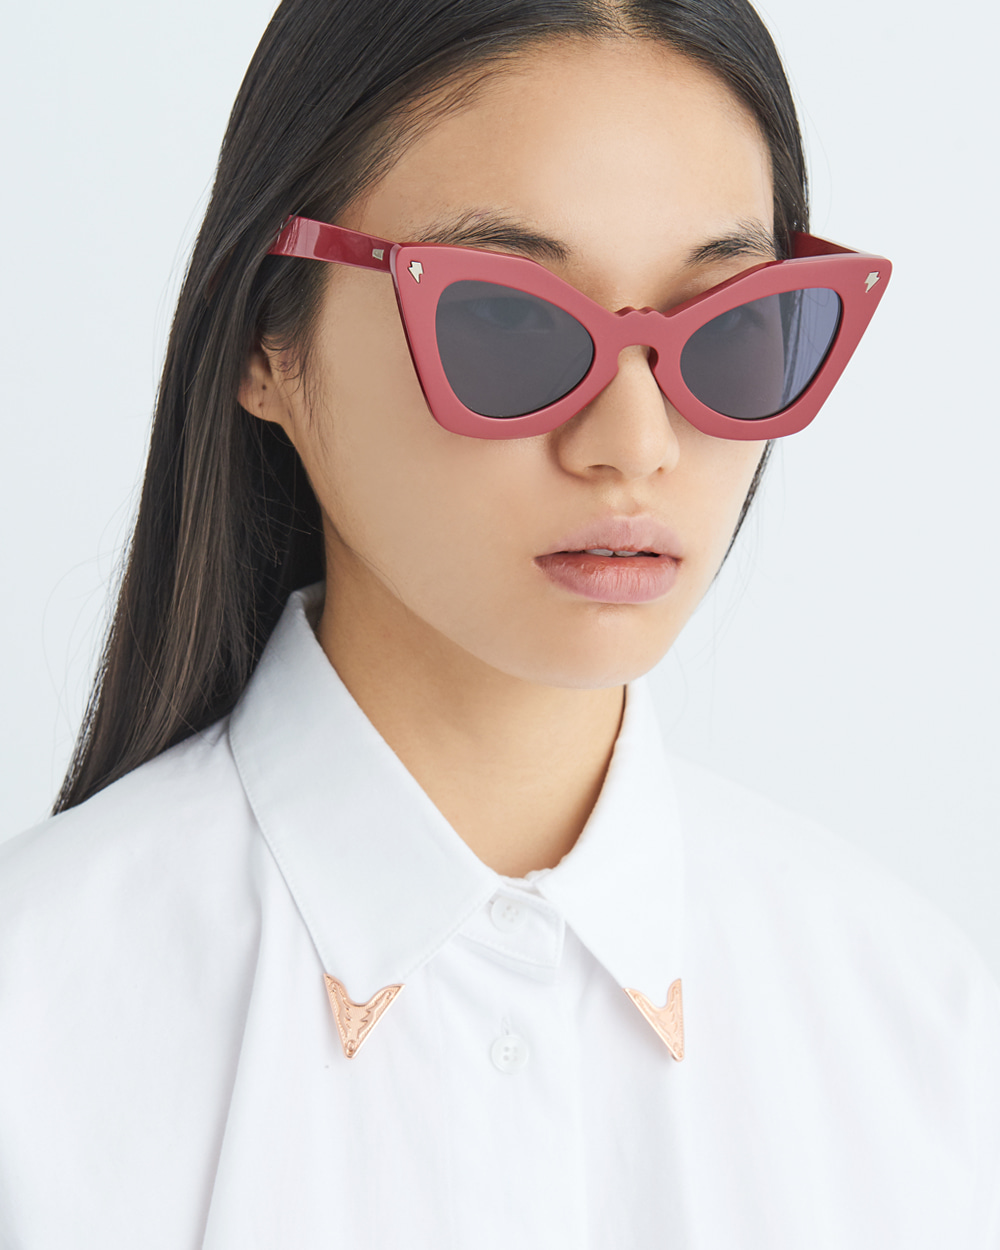 SINGLE COLOR SUNGLASSES